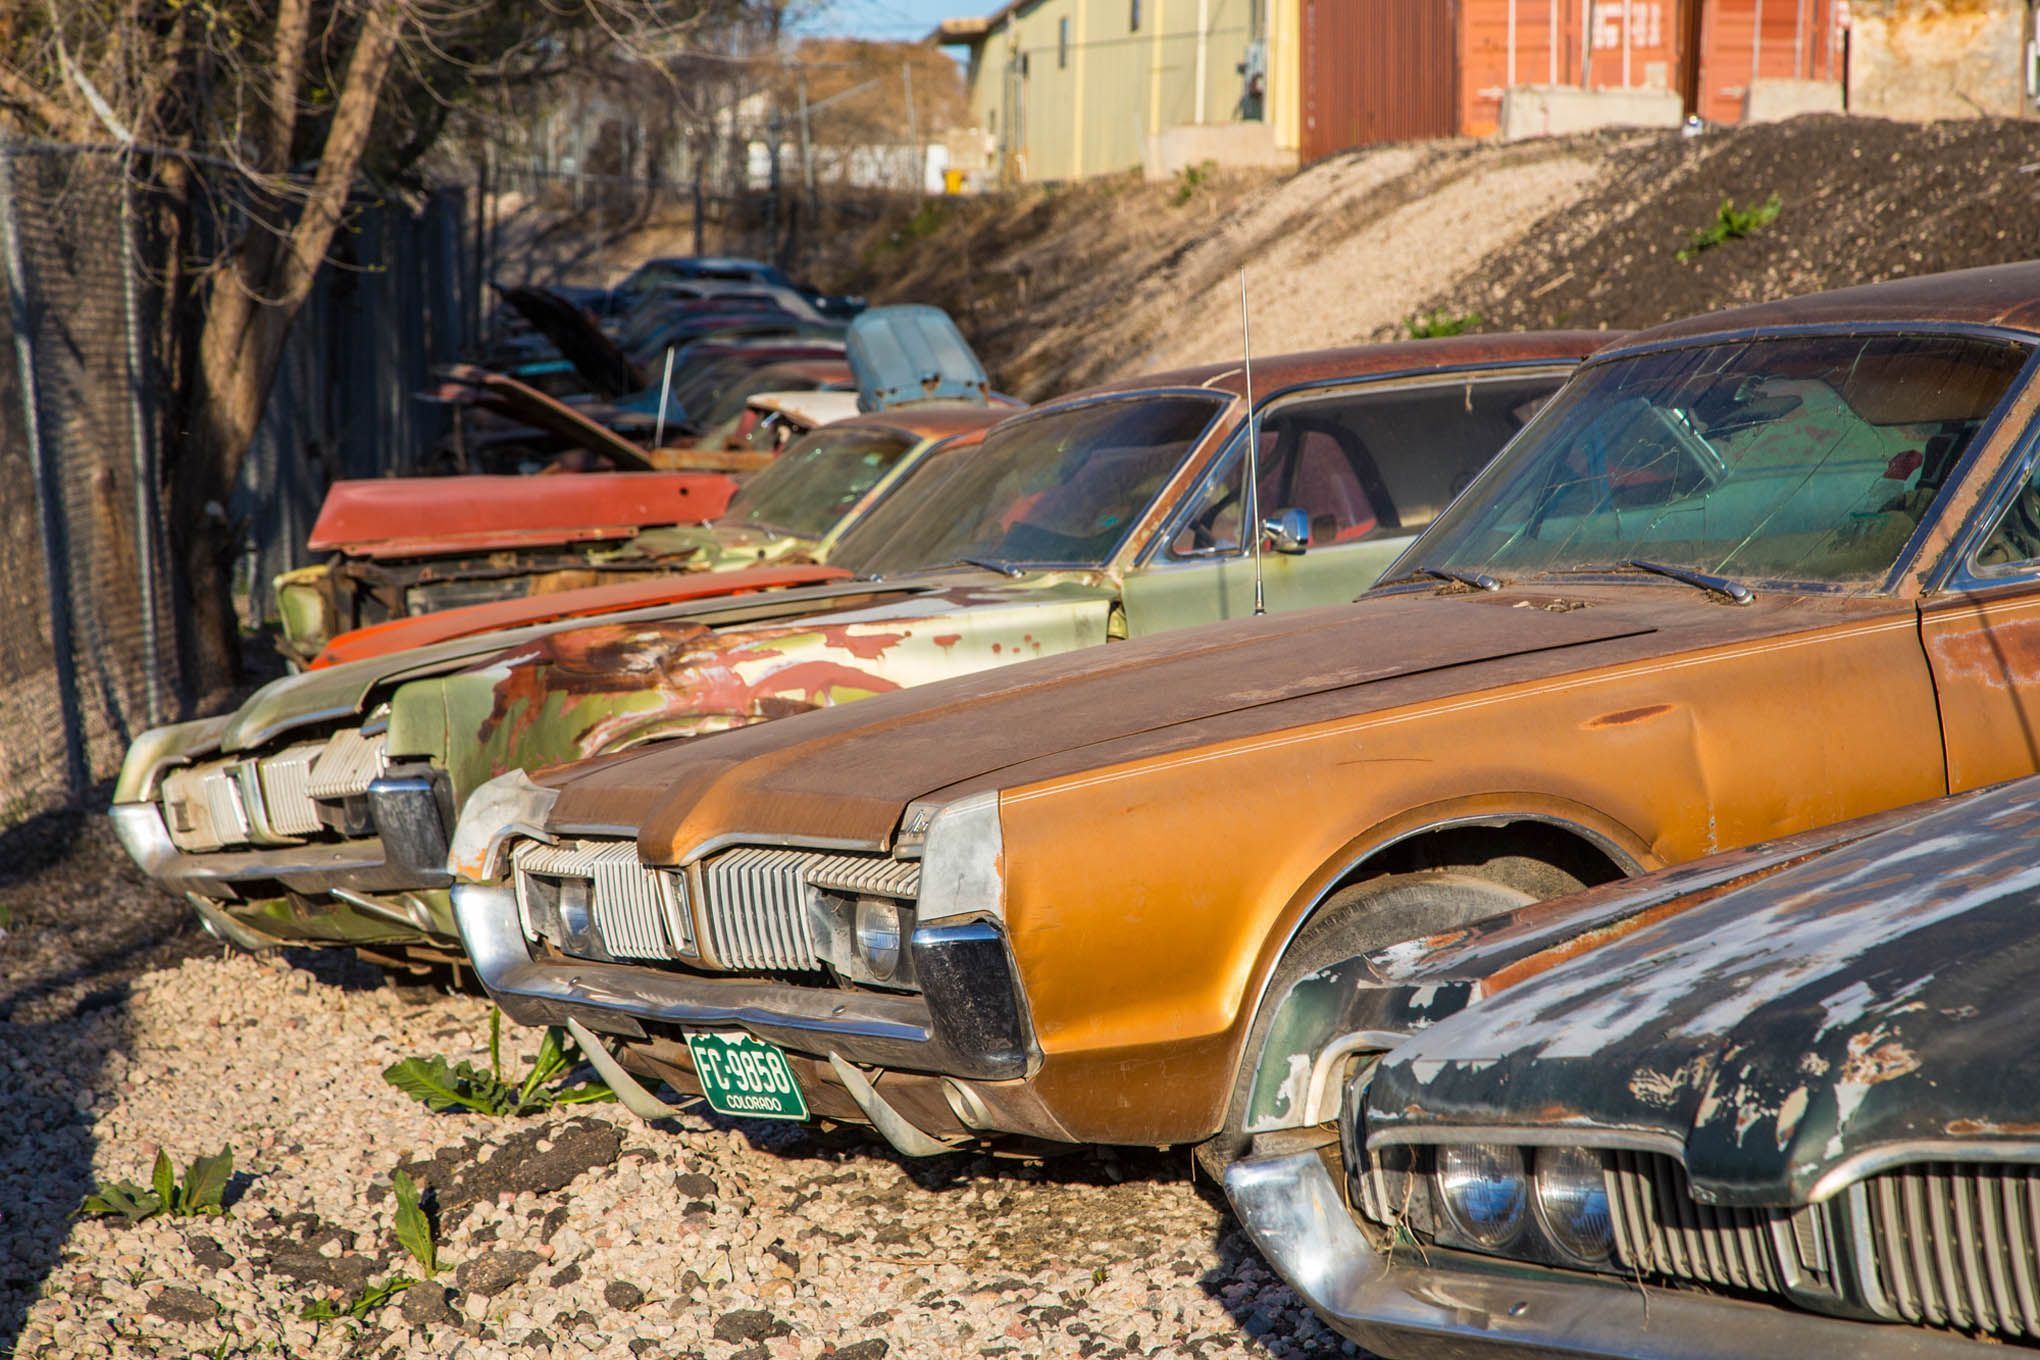 Cougars Barn Finds Abandoned Cars Junkyard Cars